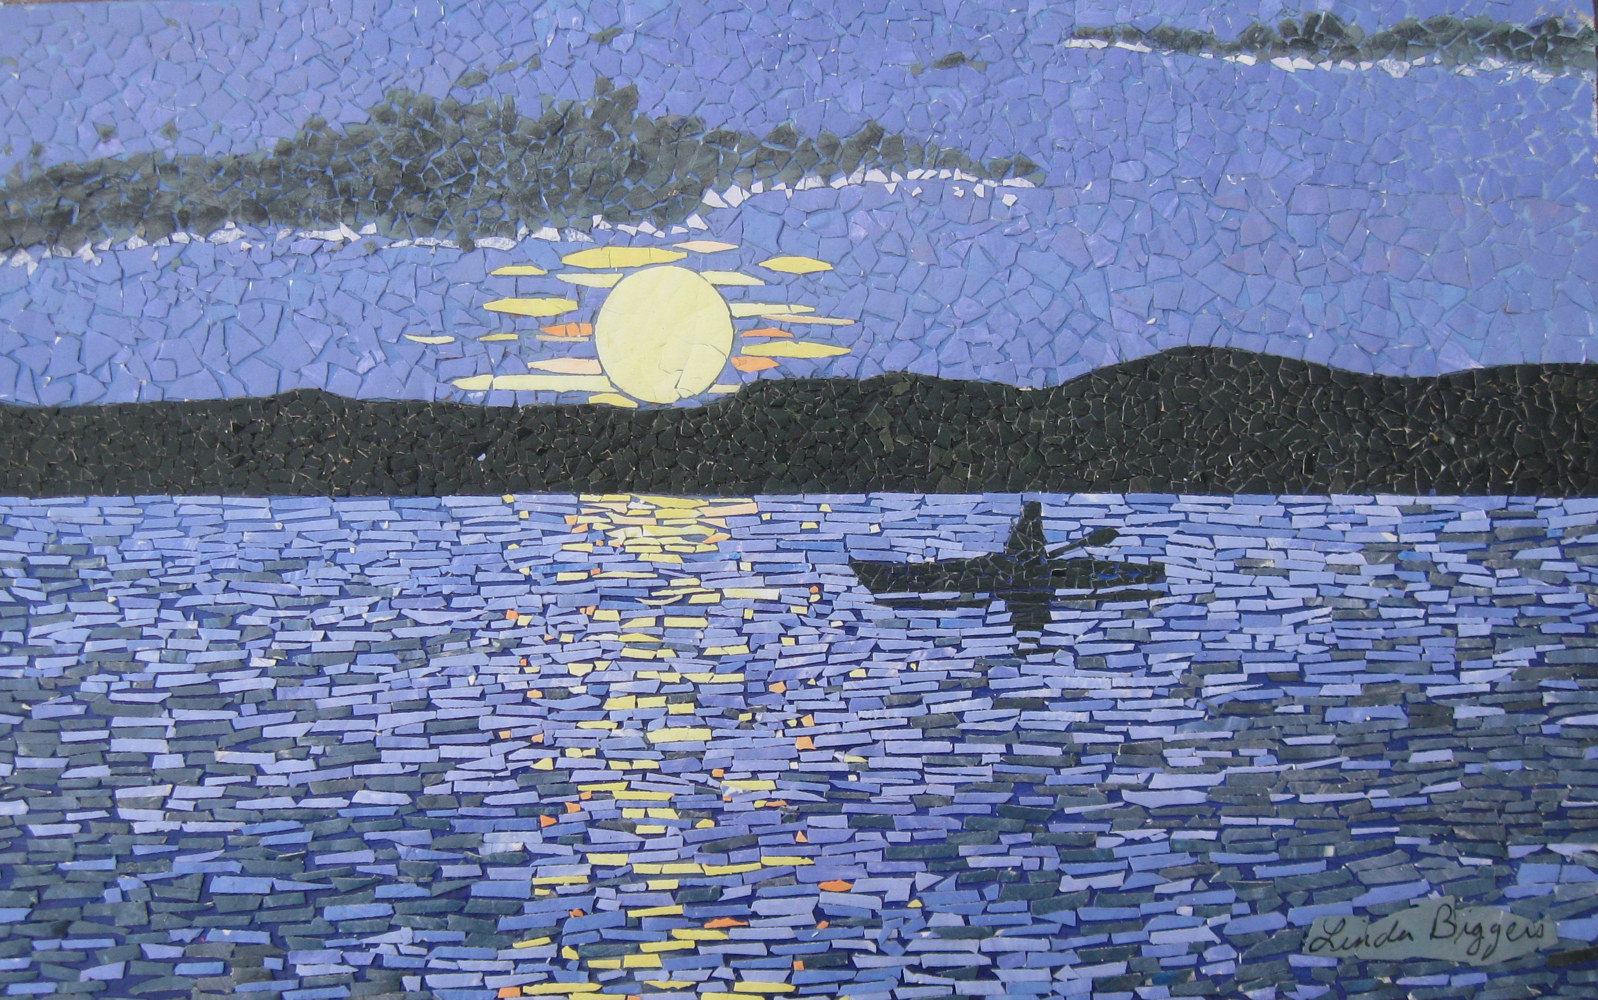 Sacandaga Evening by Linda Biggers